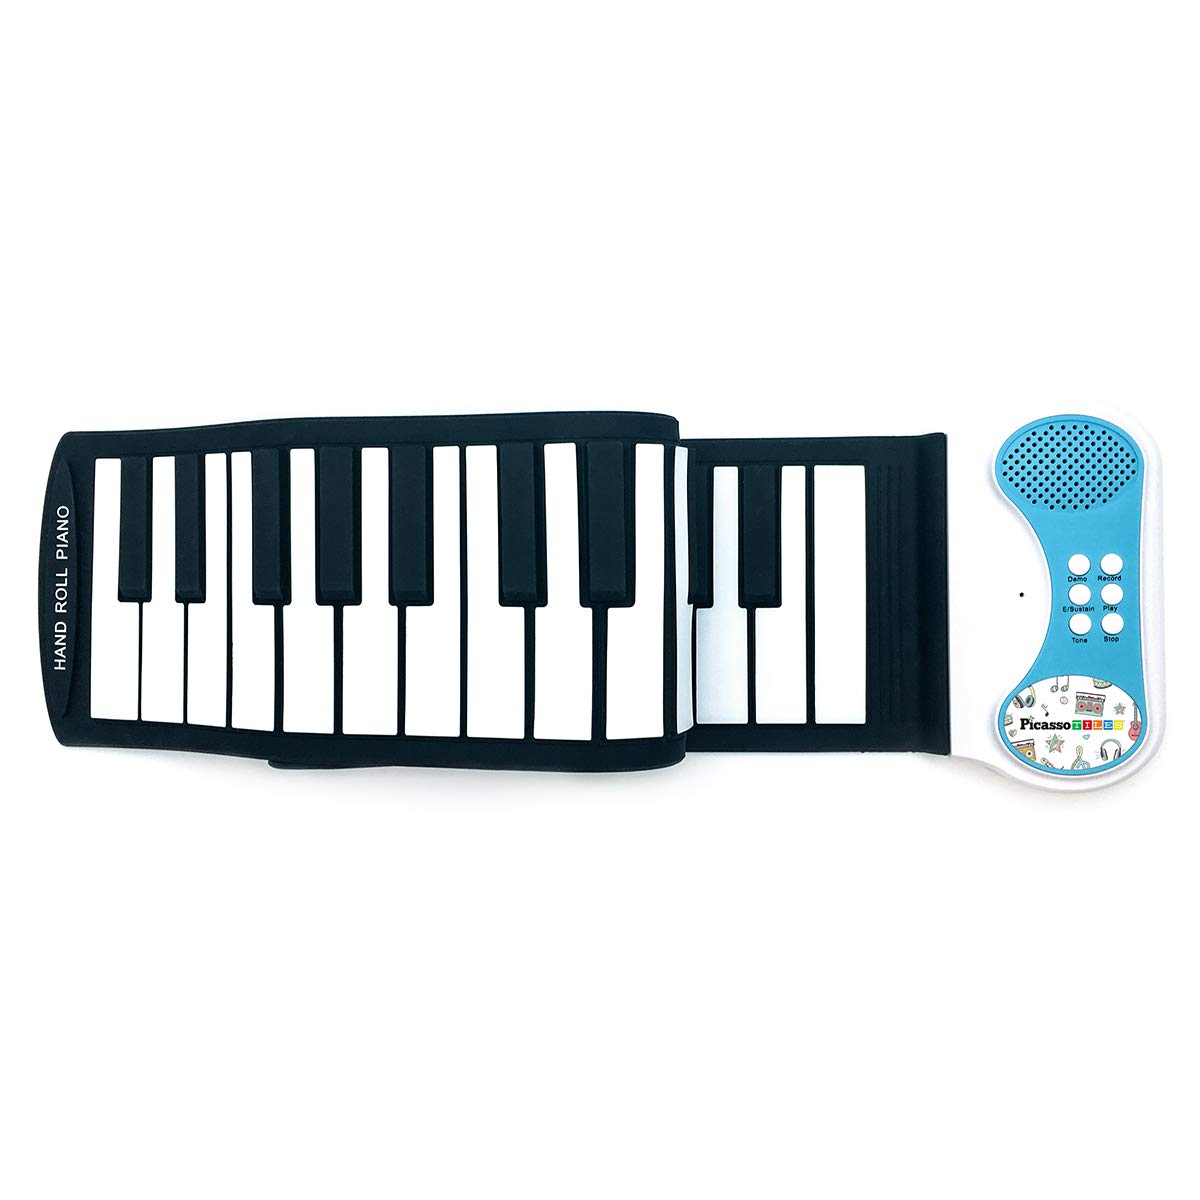 PicassoTiles PT49 Portable Kid's 49-Key Flexible Roll Up Educational Electronic Digital Music Piano Keyboard w/ Recording Feature, 8 Different Tones, 6 Educational Demo Songs & Build-in Speaker - Blue